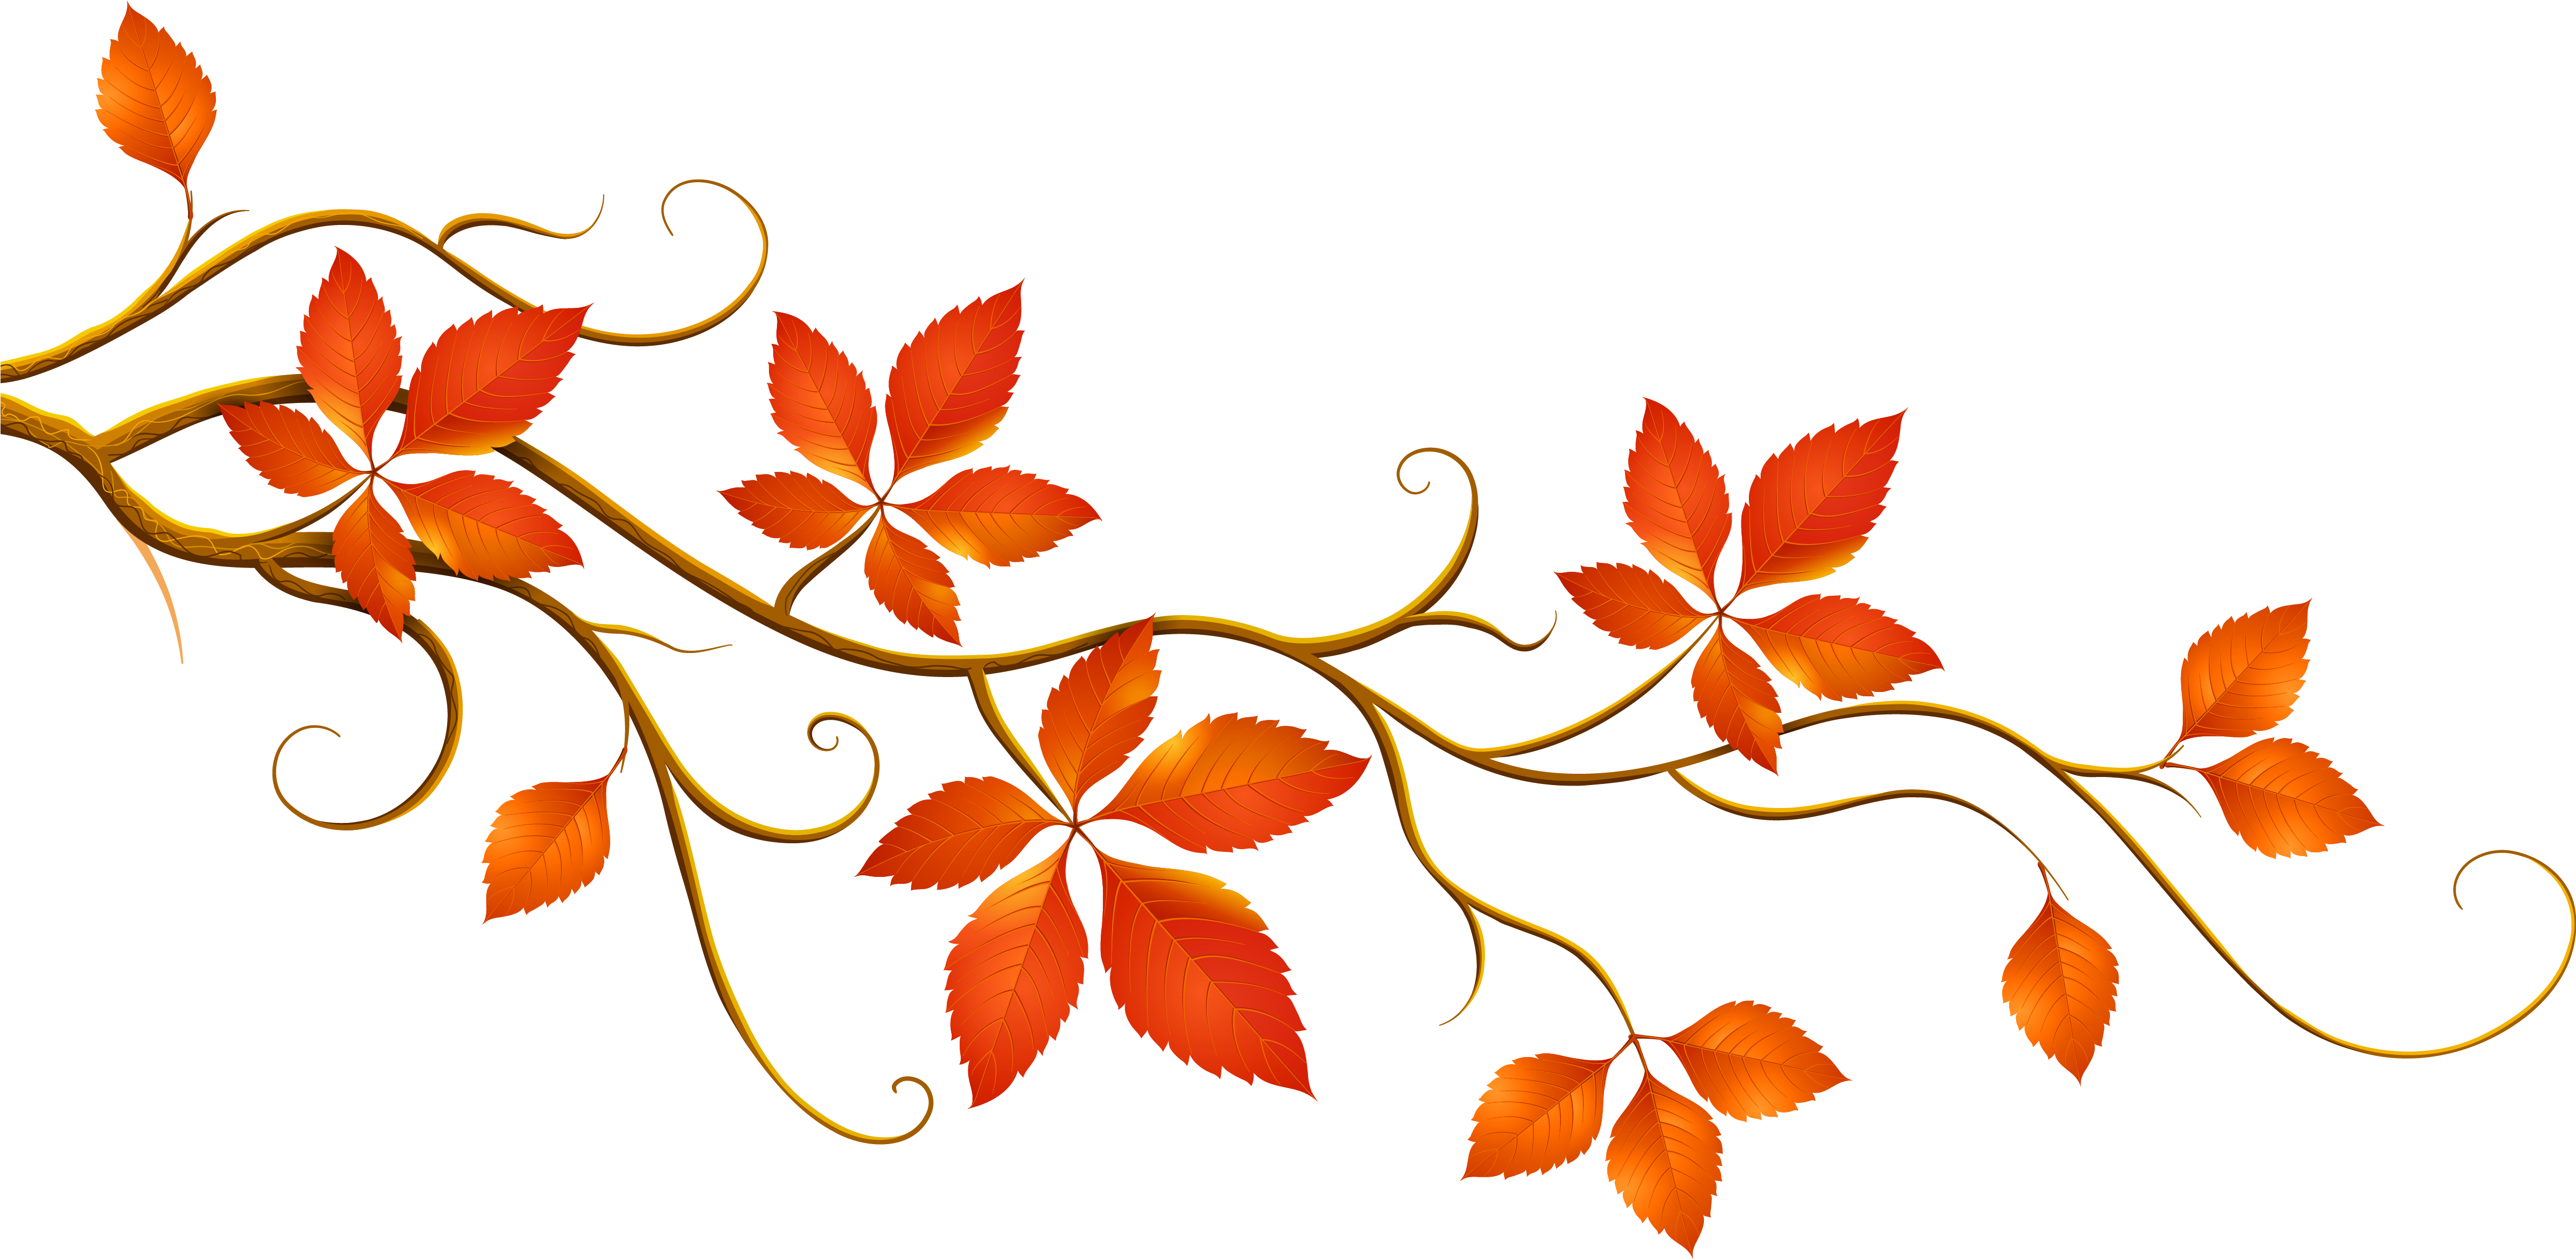 Download Hd Decorative Branch With Autumn Leaves Png Clipart Fall Tree Branch Clip Art Transparent Png Image Nicepng Com